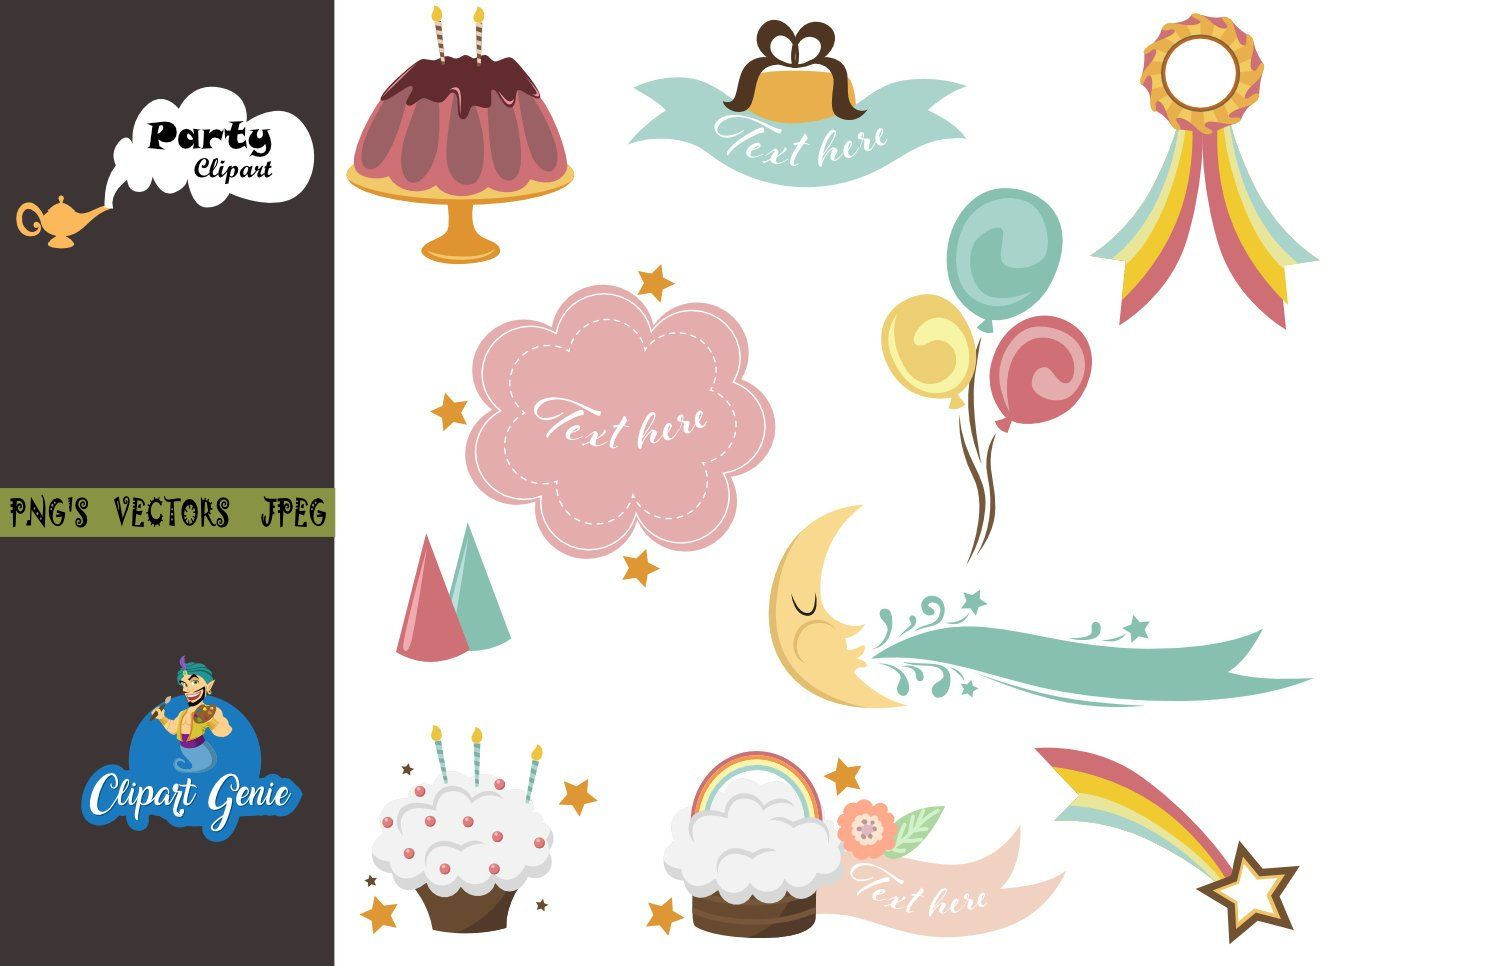 Birthday party clipart, party clipart, pool party clipart.